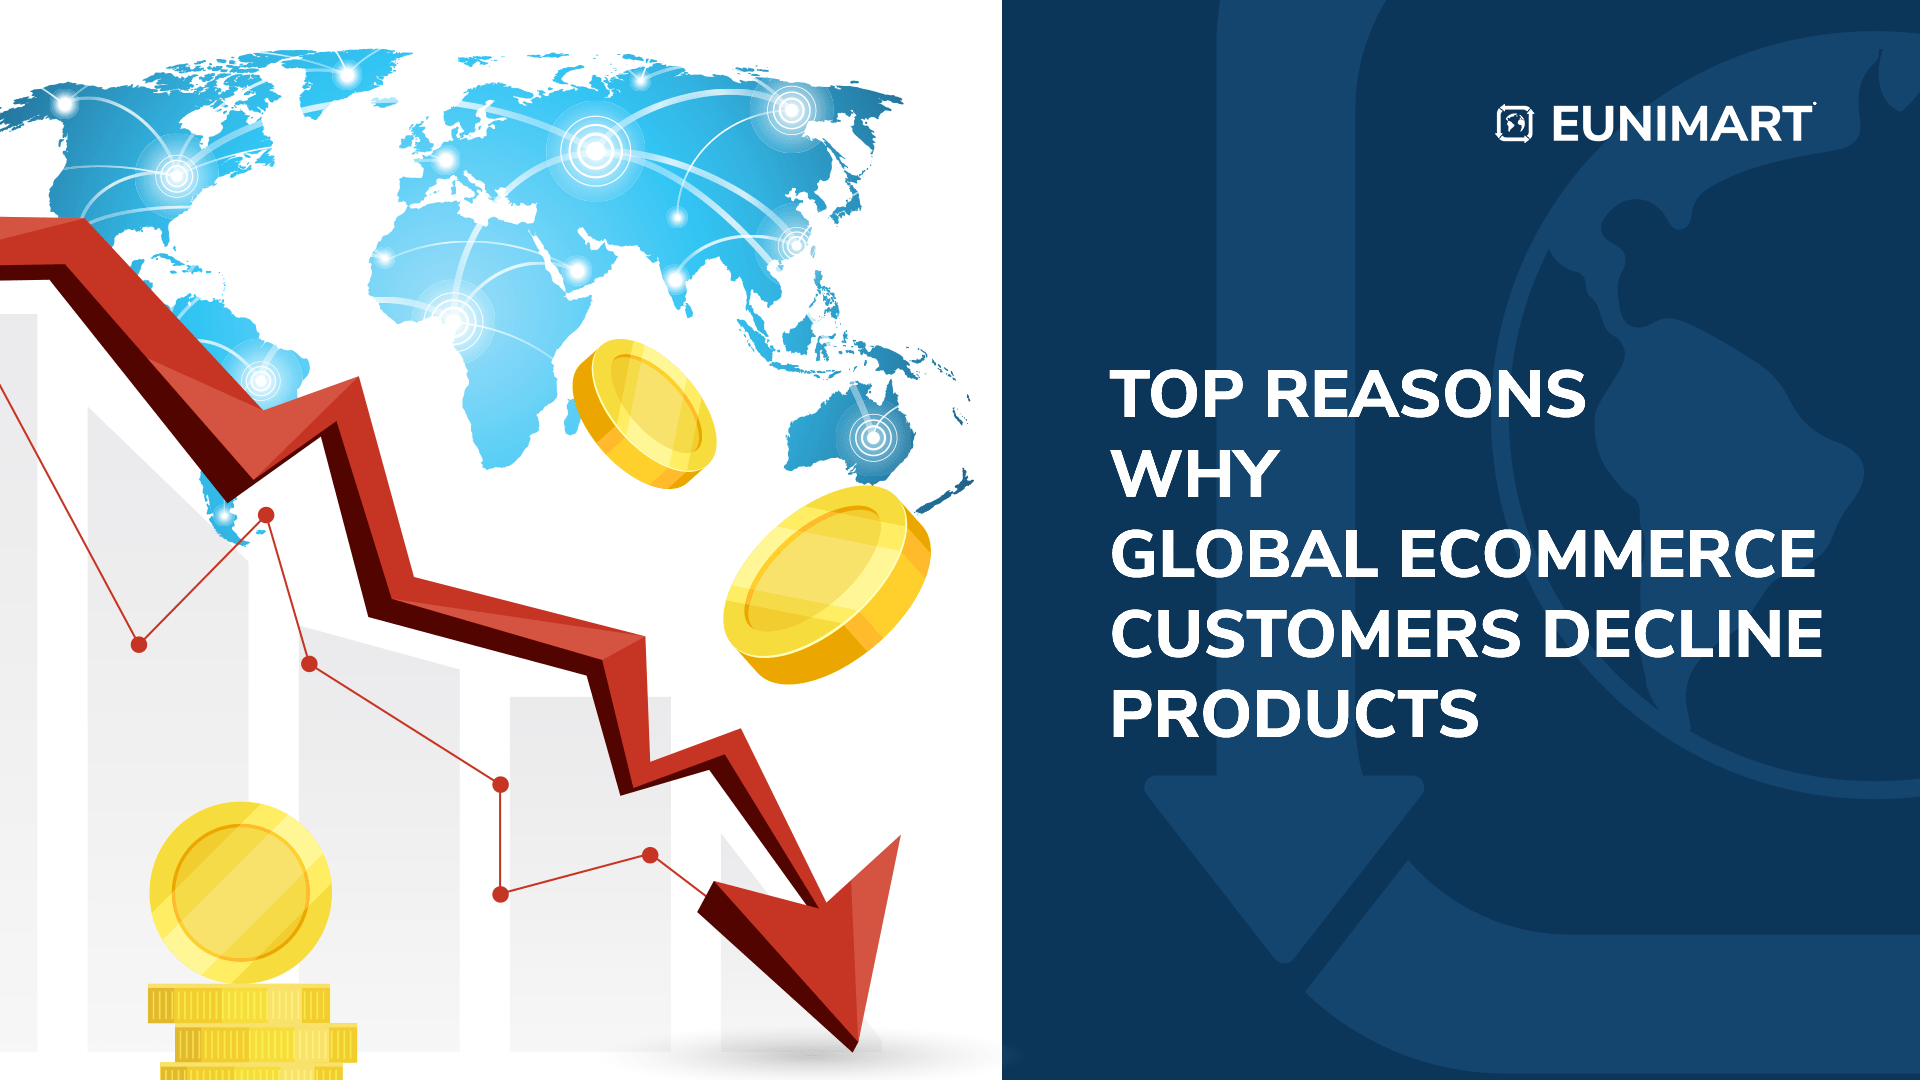 Top Reasons why Global Ecommerce Customers Decline Products